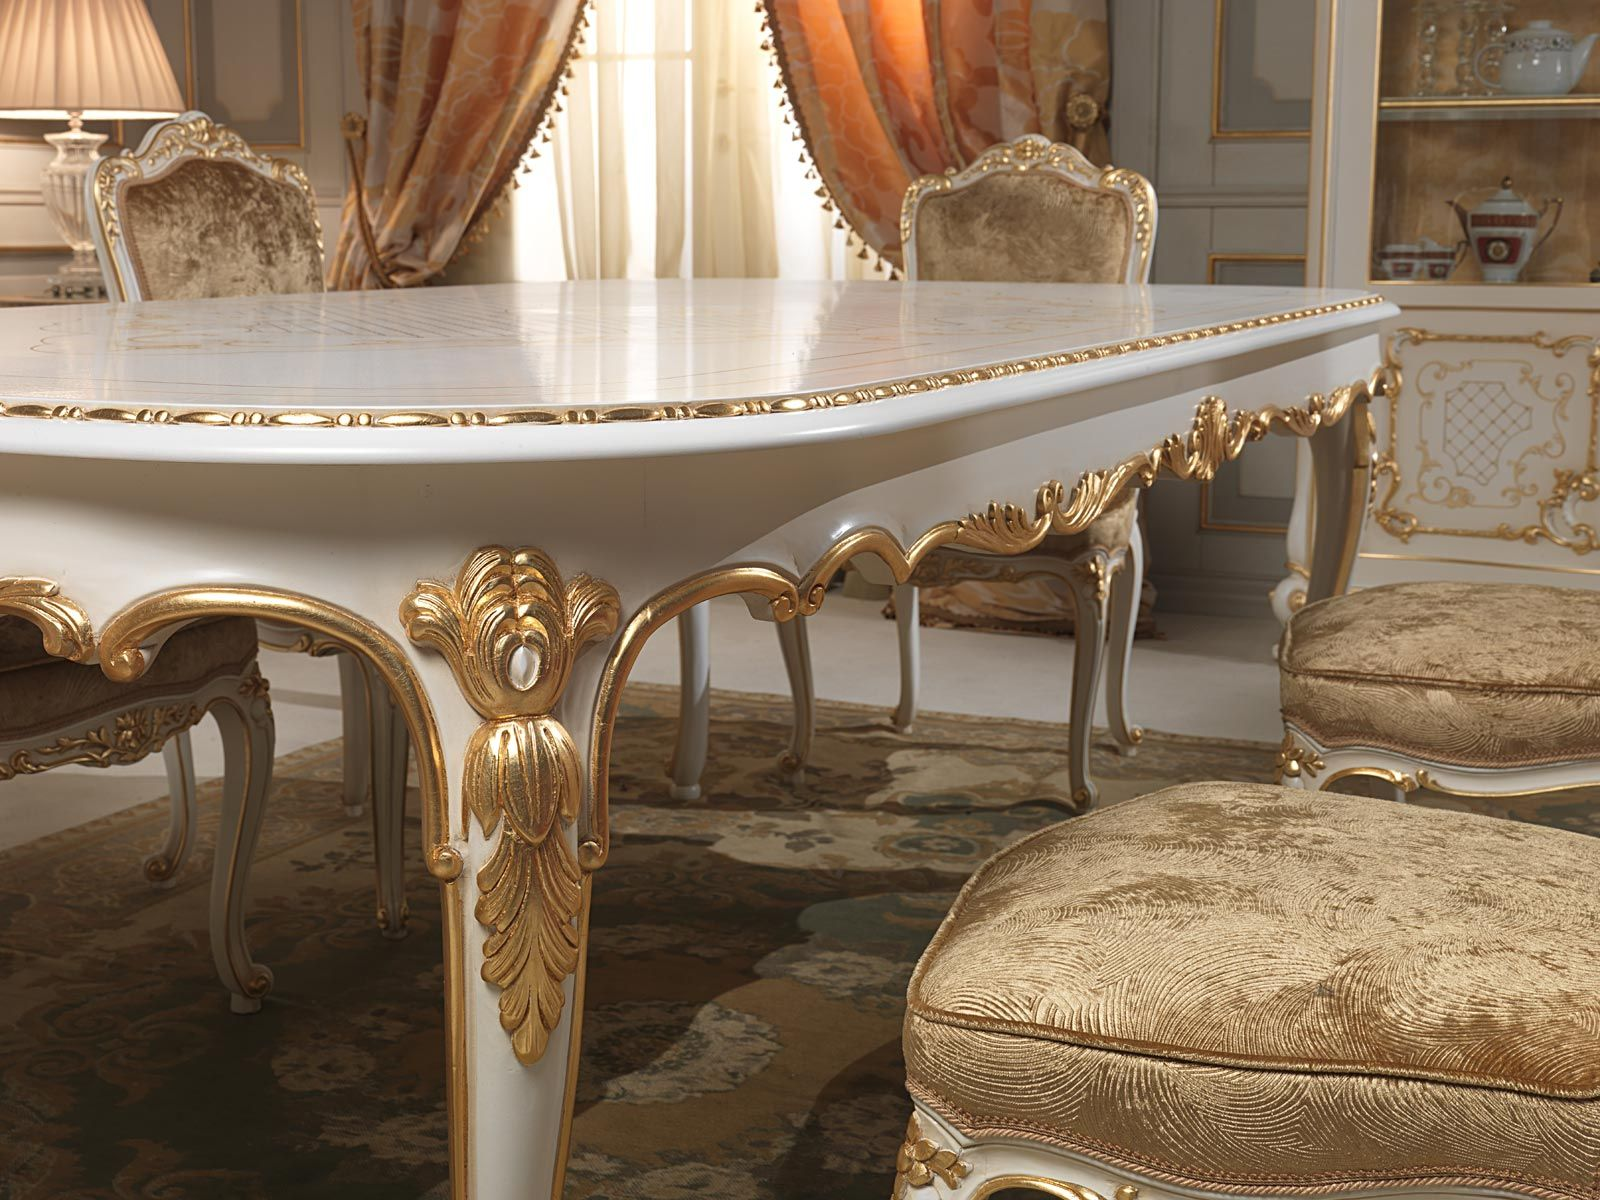 dining table in louis xv style with golden carvings executed by dining table in louis xv style with golden carvings executed by hand venice classic luxury furniture collection